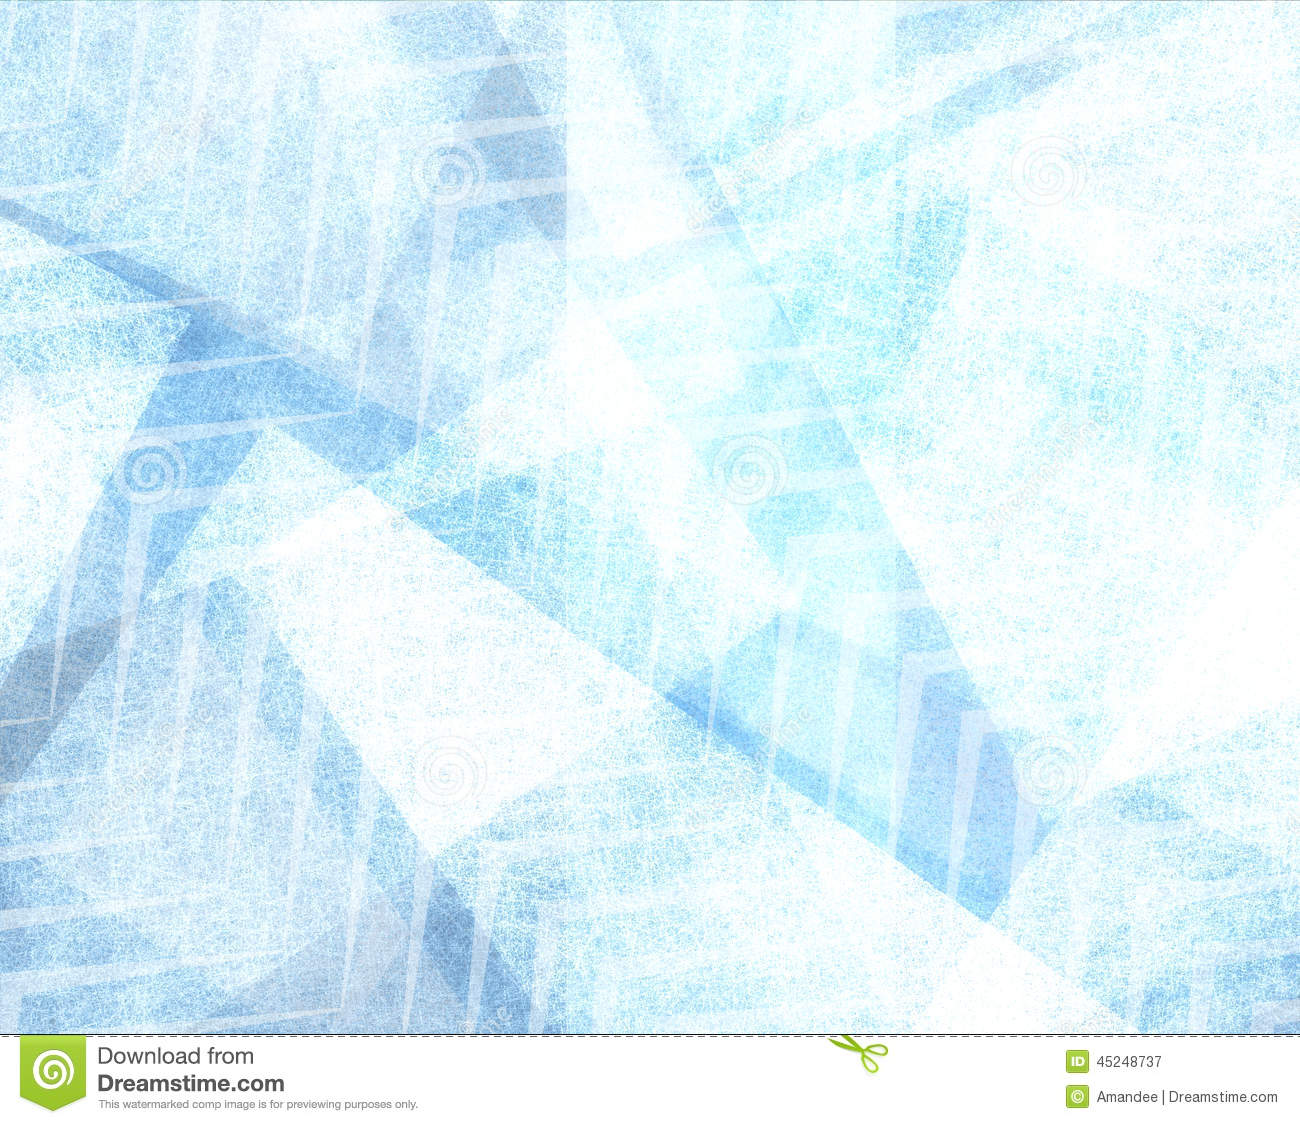 Abstract Faded Blue Pattern Background Design With Texture And Faint Zigzag Stripes